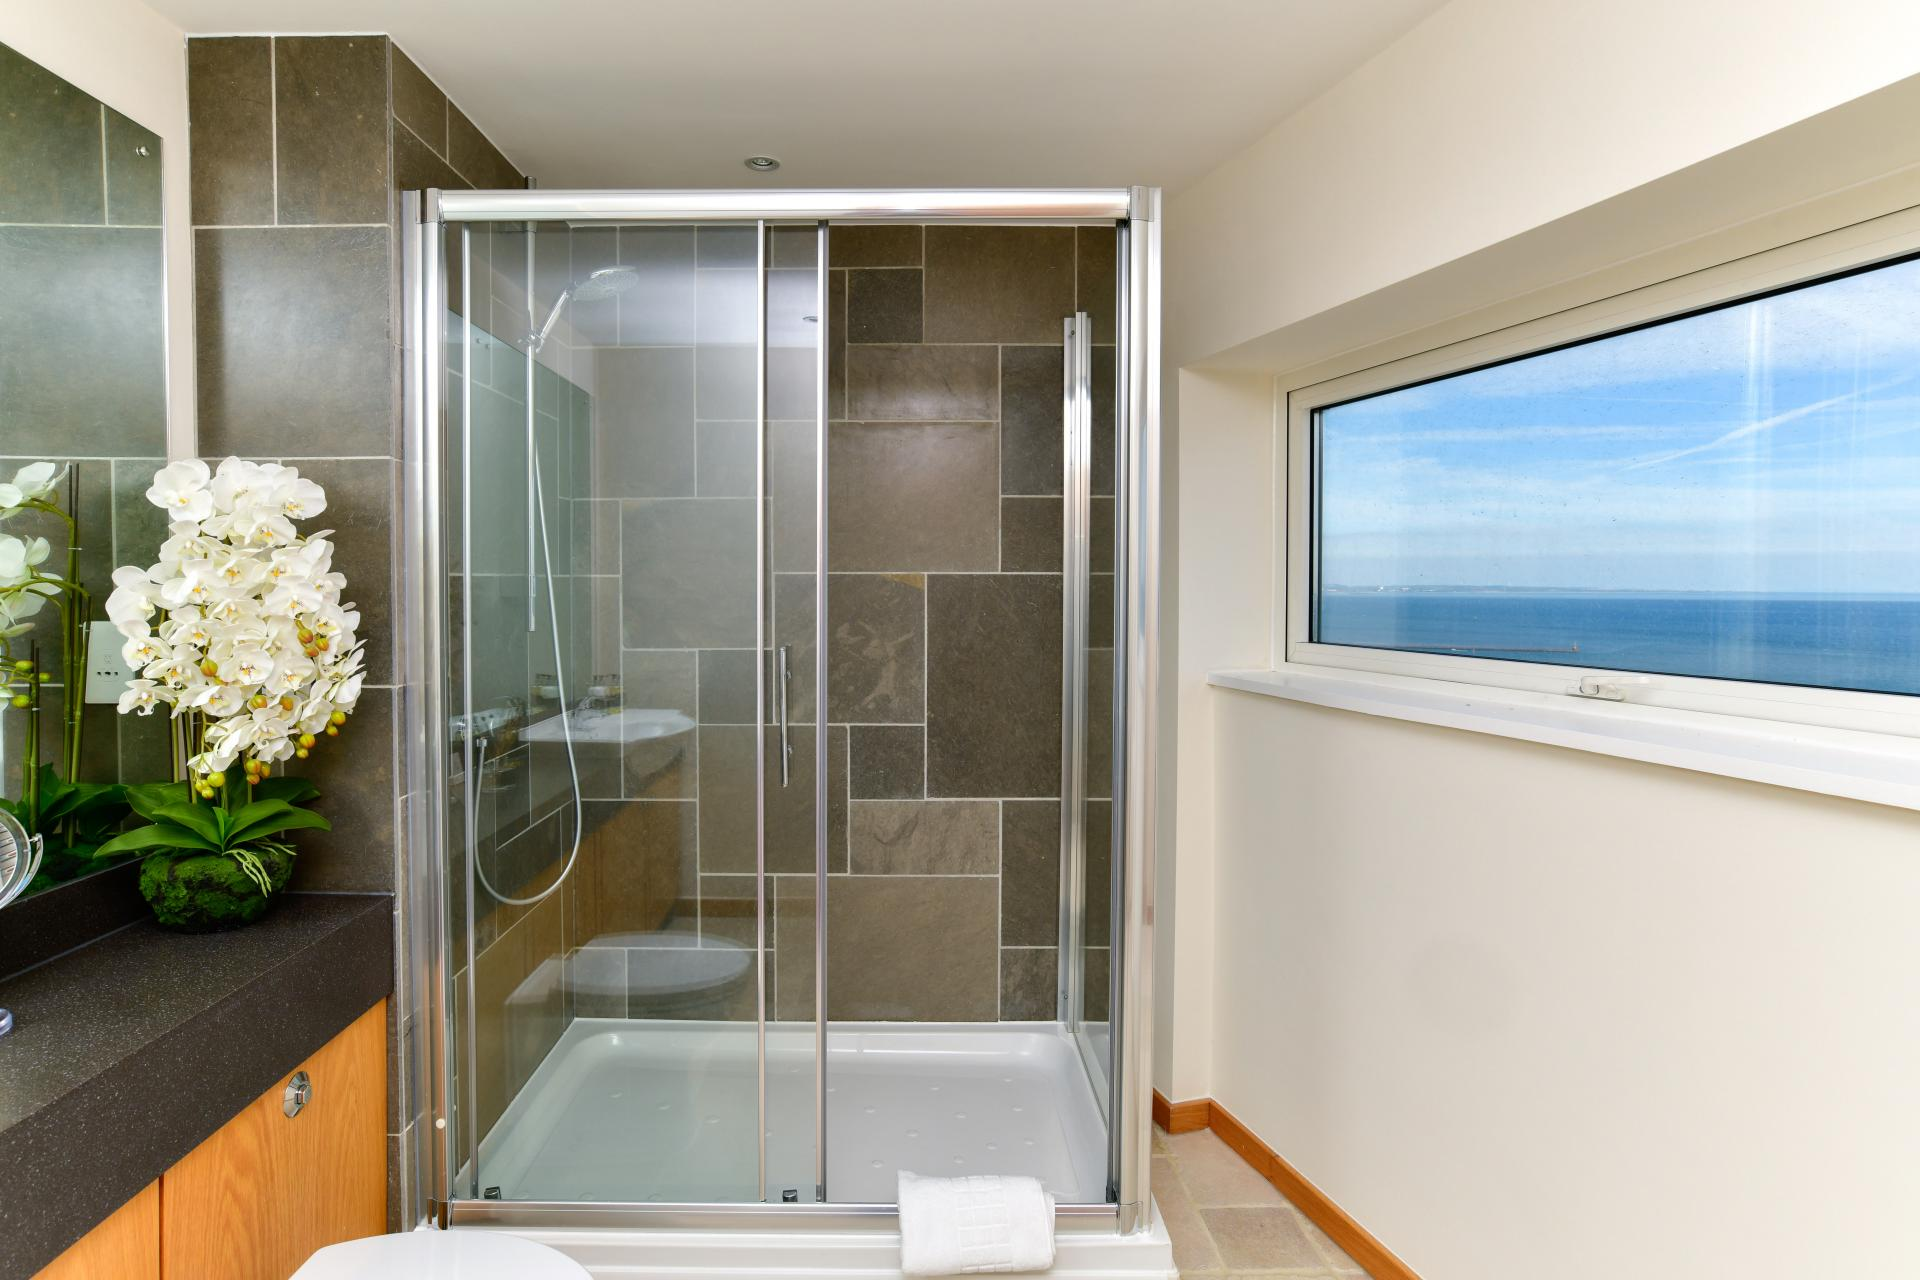 Bathroom 3 at Meridian Quay Penthouses, Maritime Quarter, Swansea - Citybase Apartments